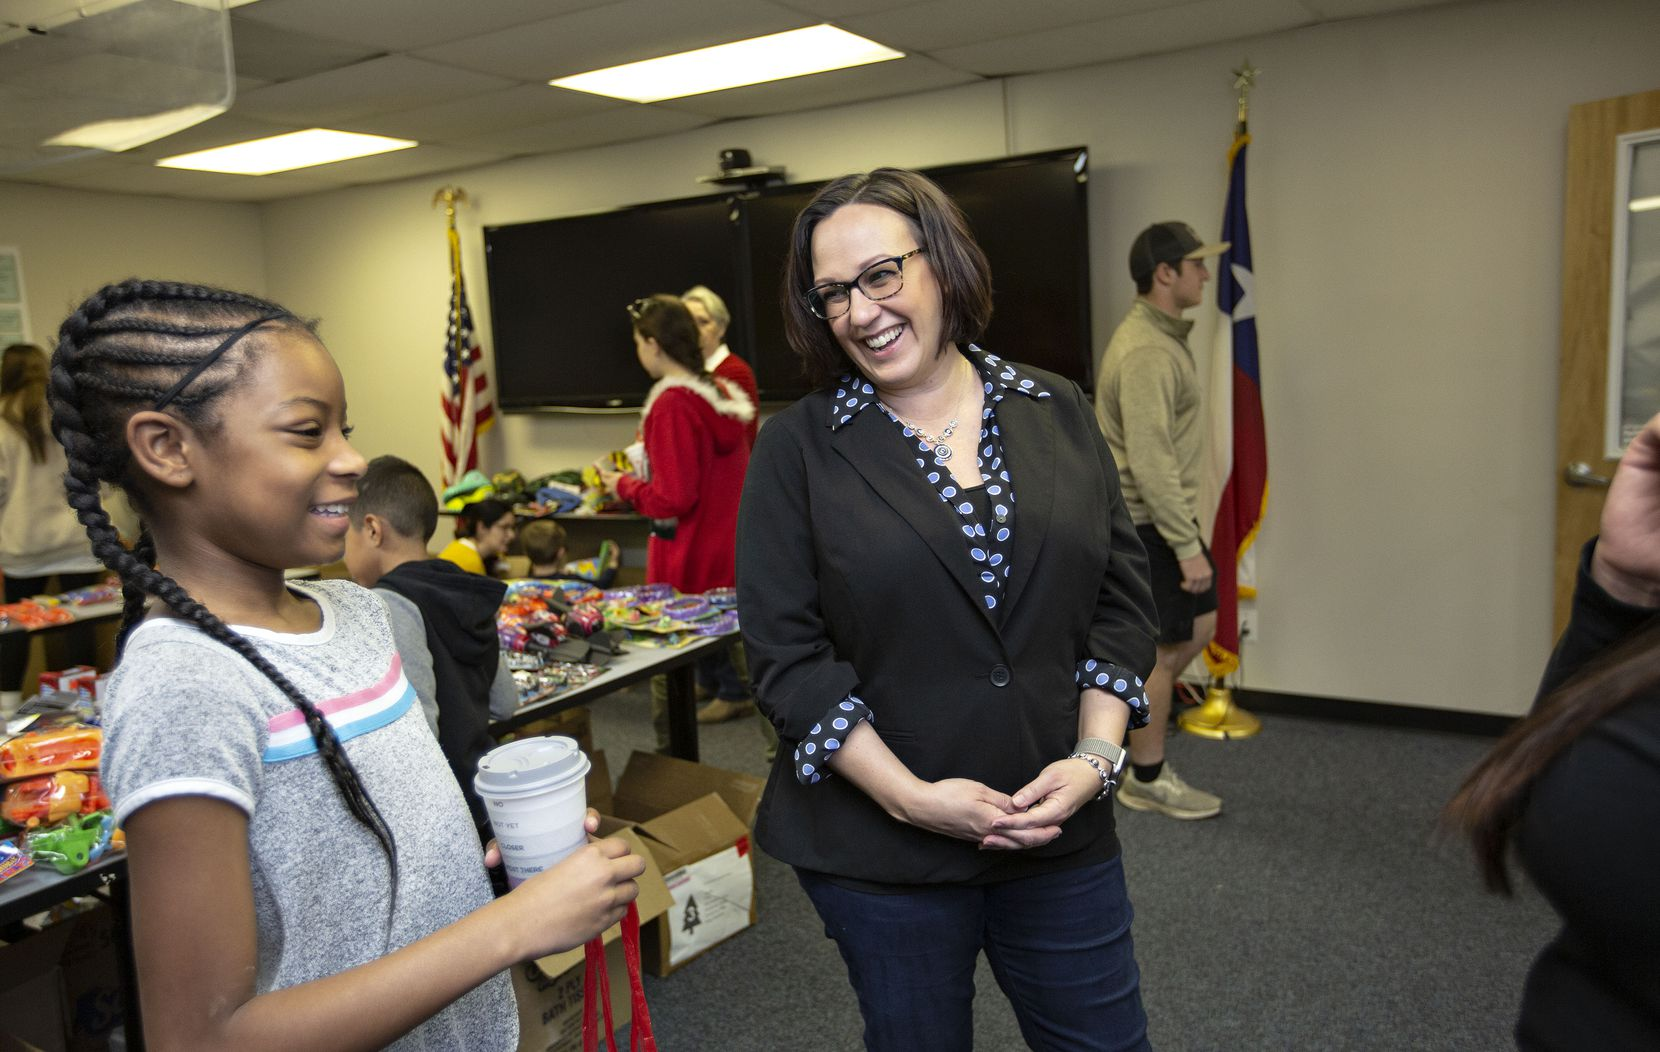 MJ Hegar chats with Azaria Jordan, 9, and her stepmother, Staff Sgt. Selina Robinson, during her visit to Operation Homefront's toy distribution event at the Army base in Austin.